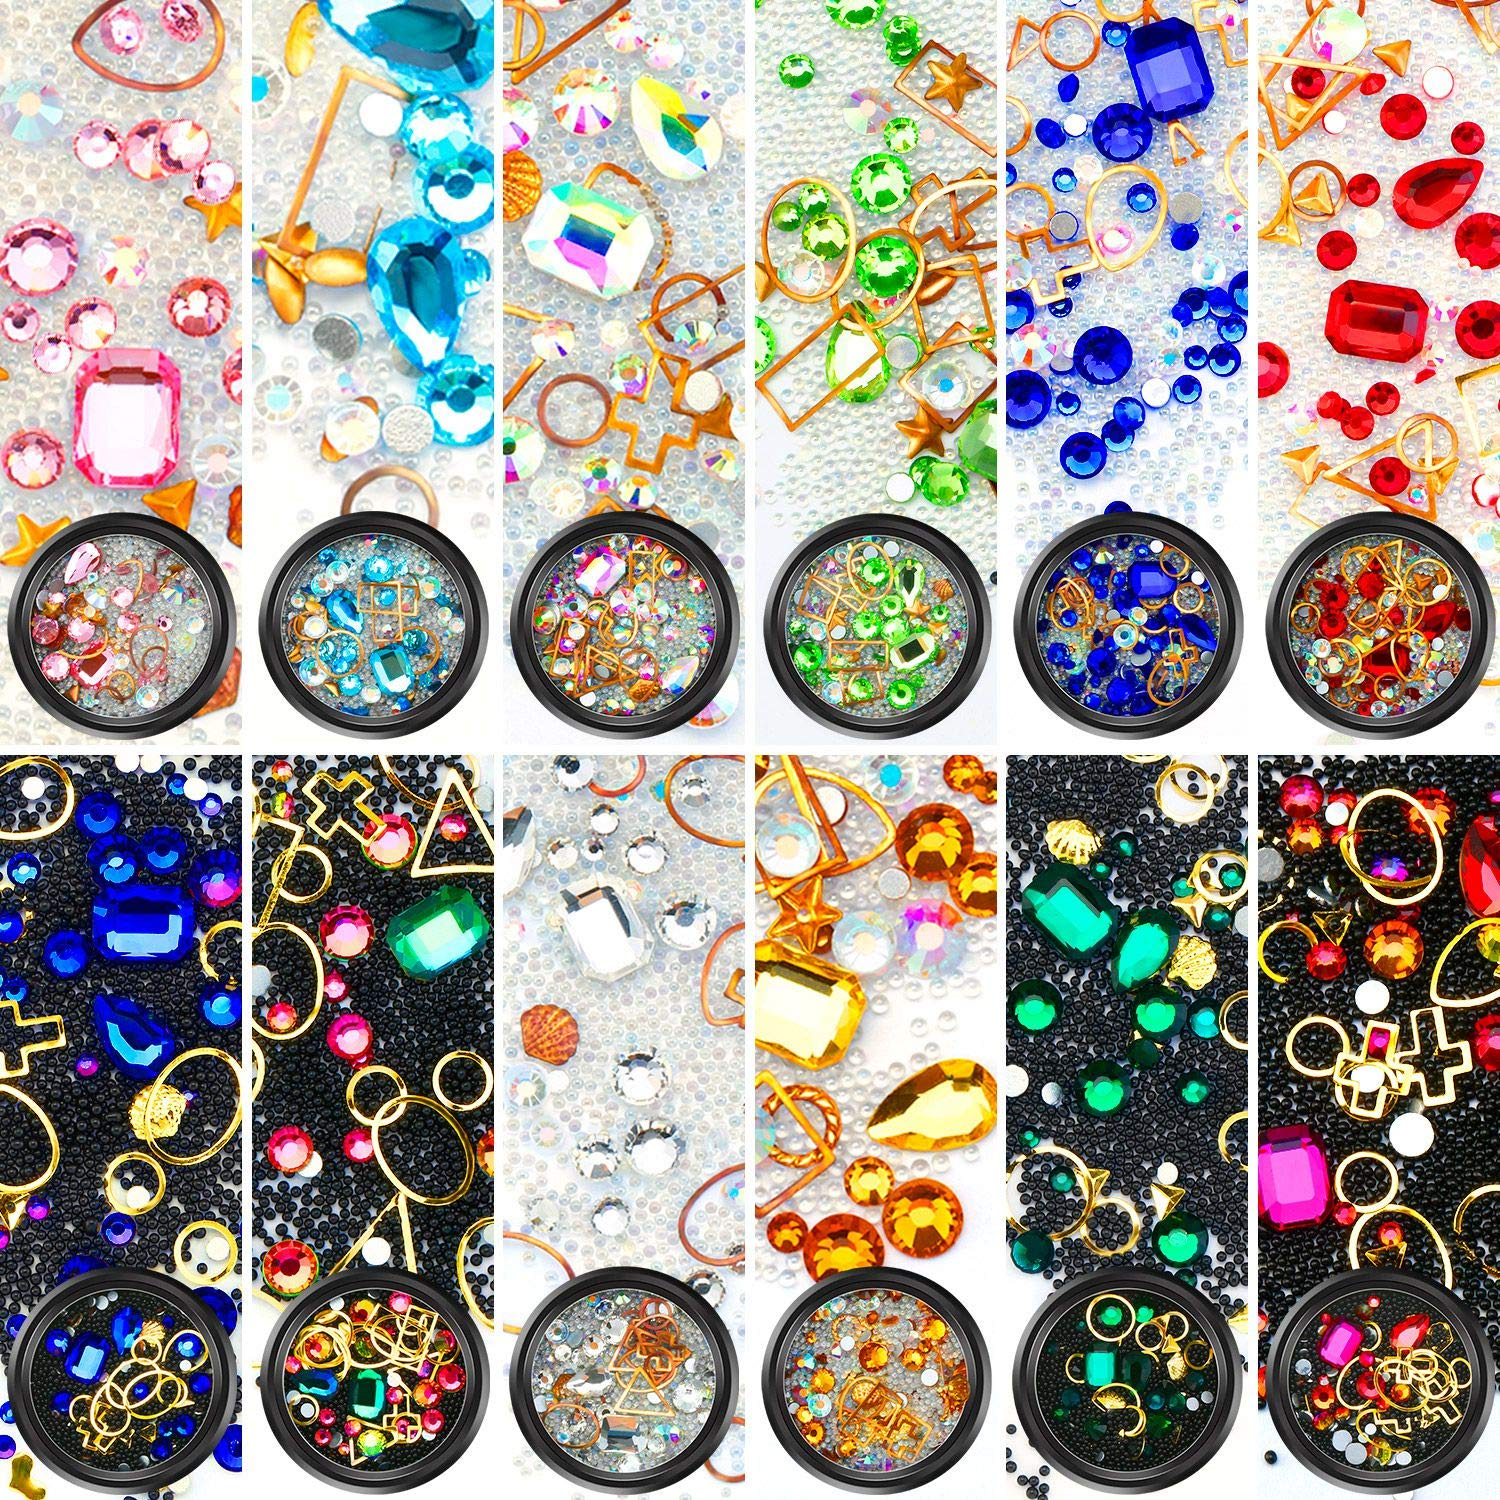 Yaomiao Nail Art Rhinestones Flatback Diamonds Crystals Beads Gems Mixed Colorful for Nail Art Decorations DIY Design (Set 2, 12 Boxes) by Yaomiao